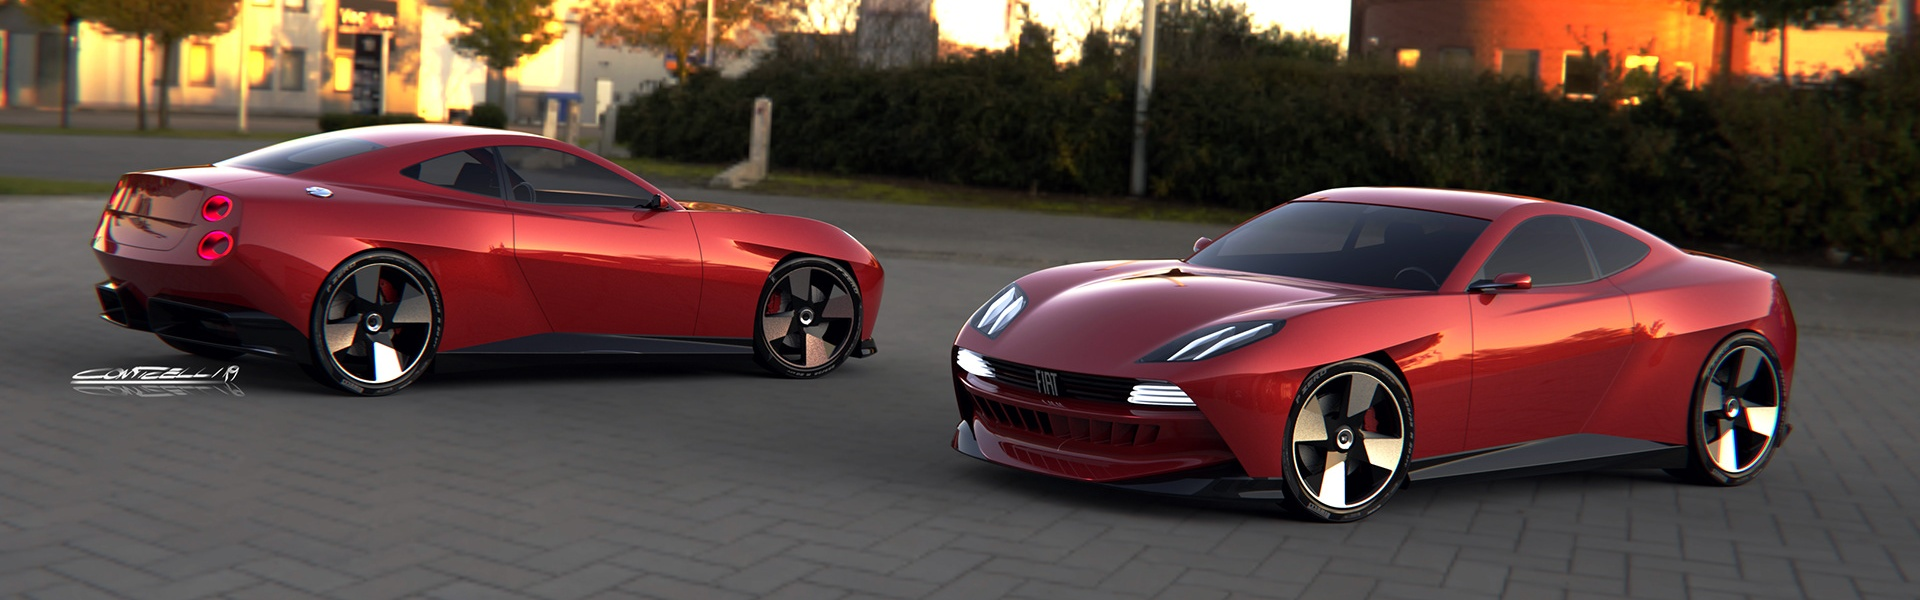 Fiat-Coupe-Tribute-renderings-by-Gaspare-Conticelli-7.jpg